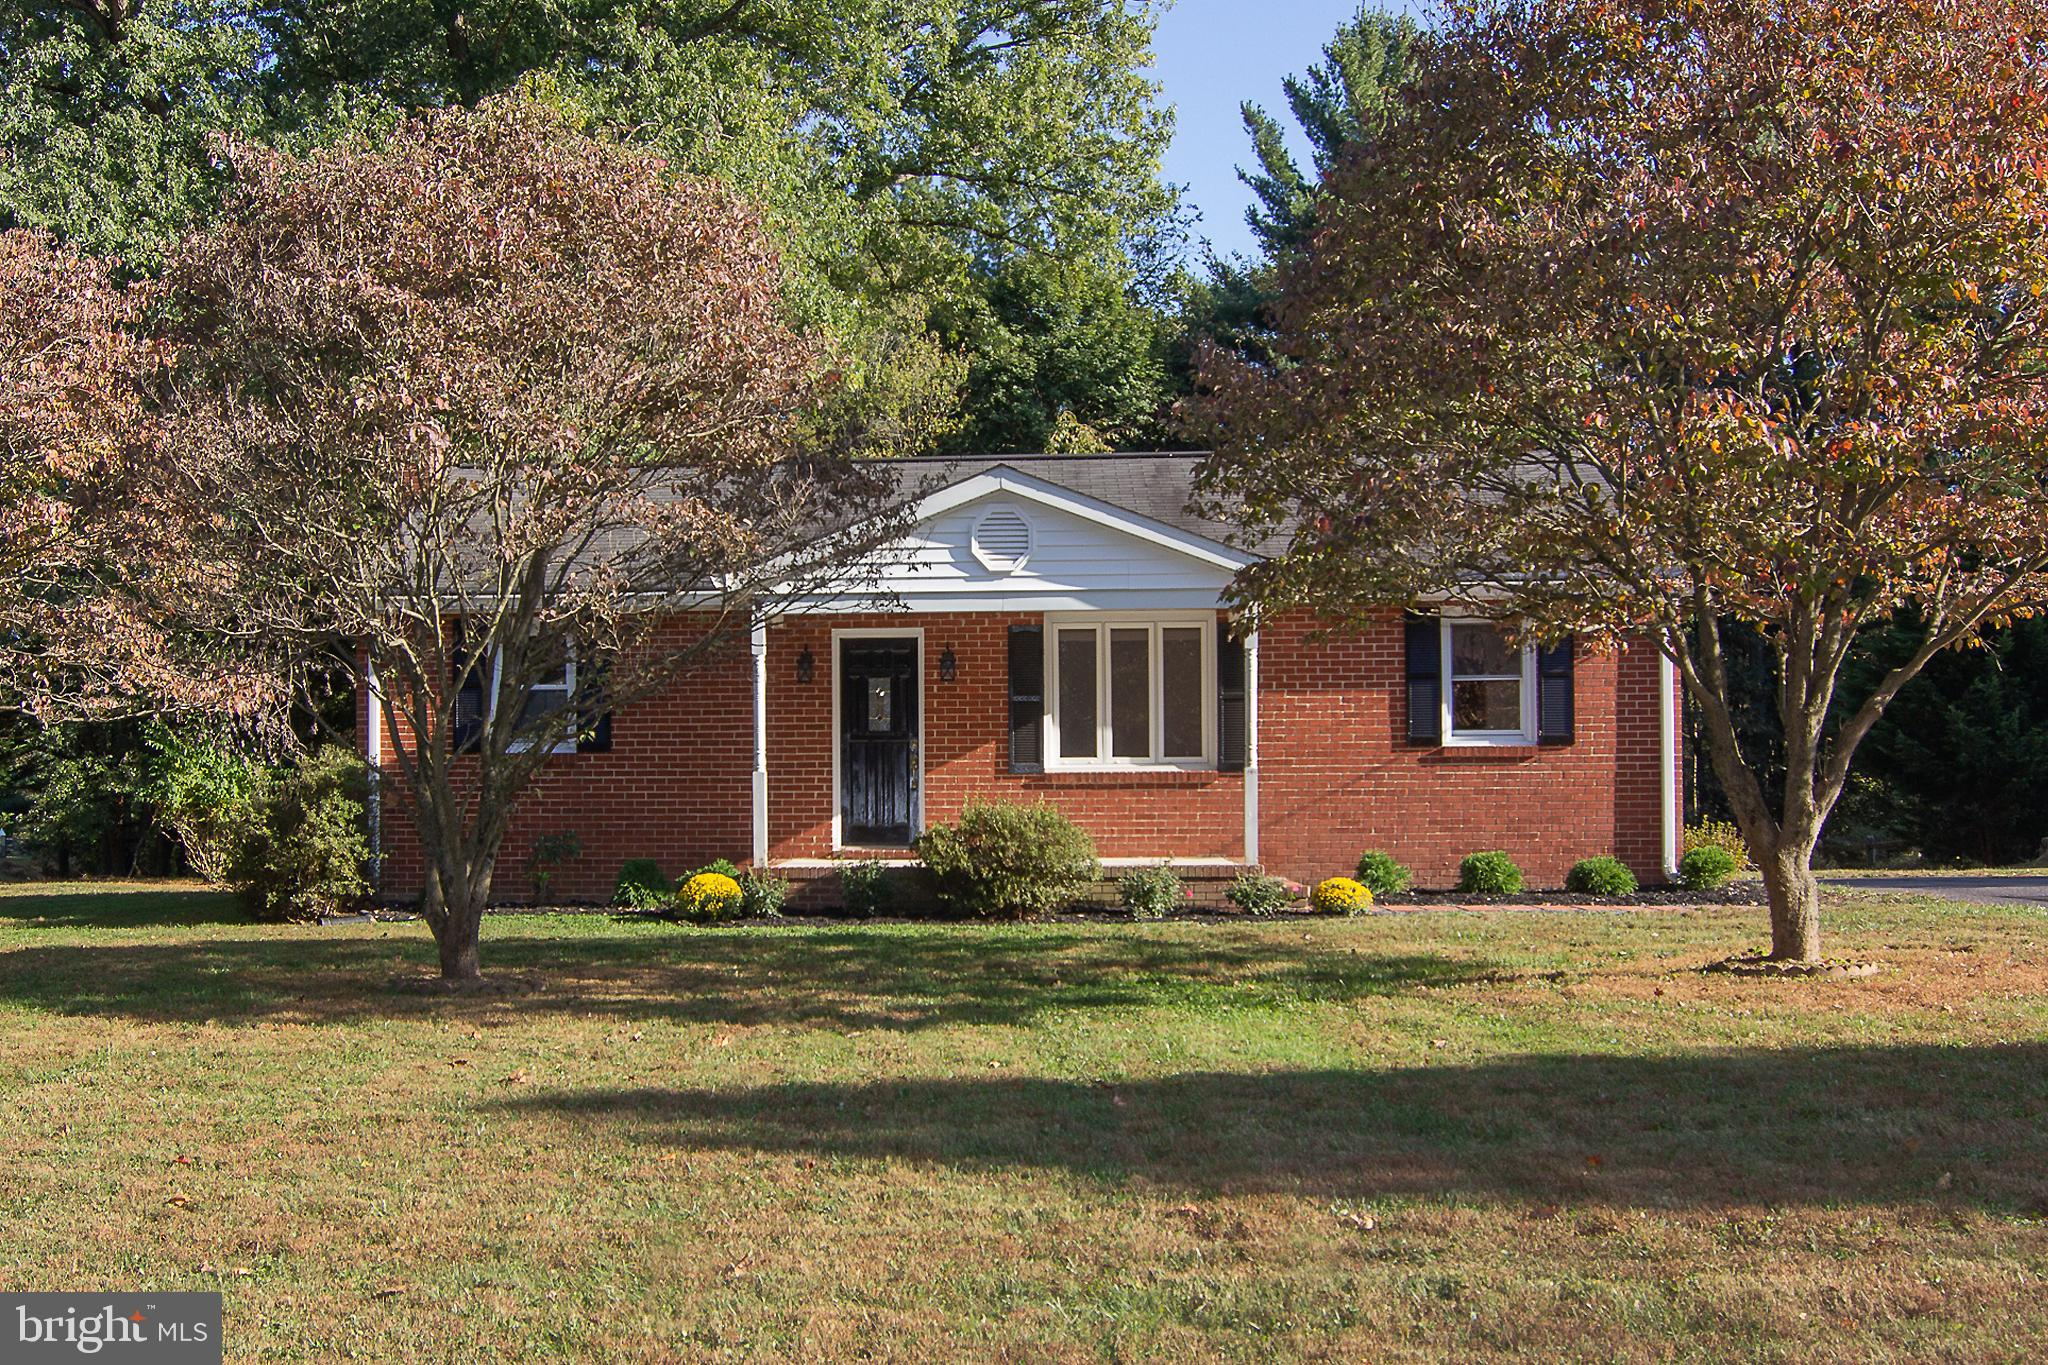 929 KLEES MILL Rd, Westminster, MD, 21157